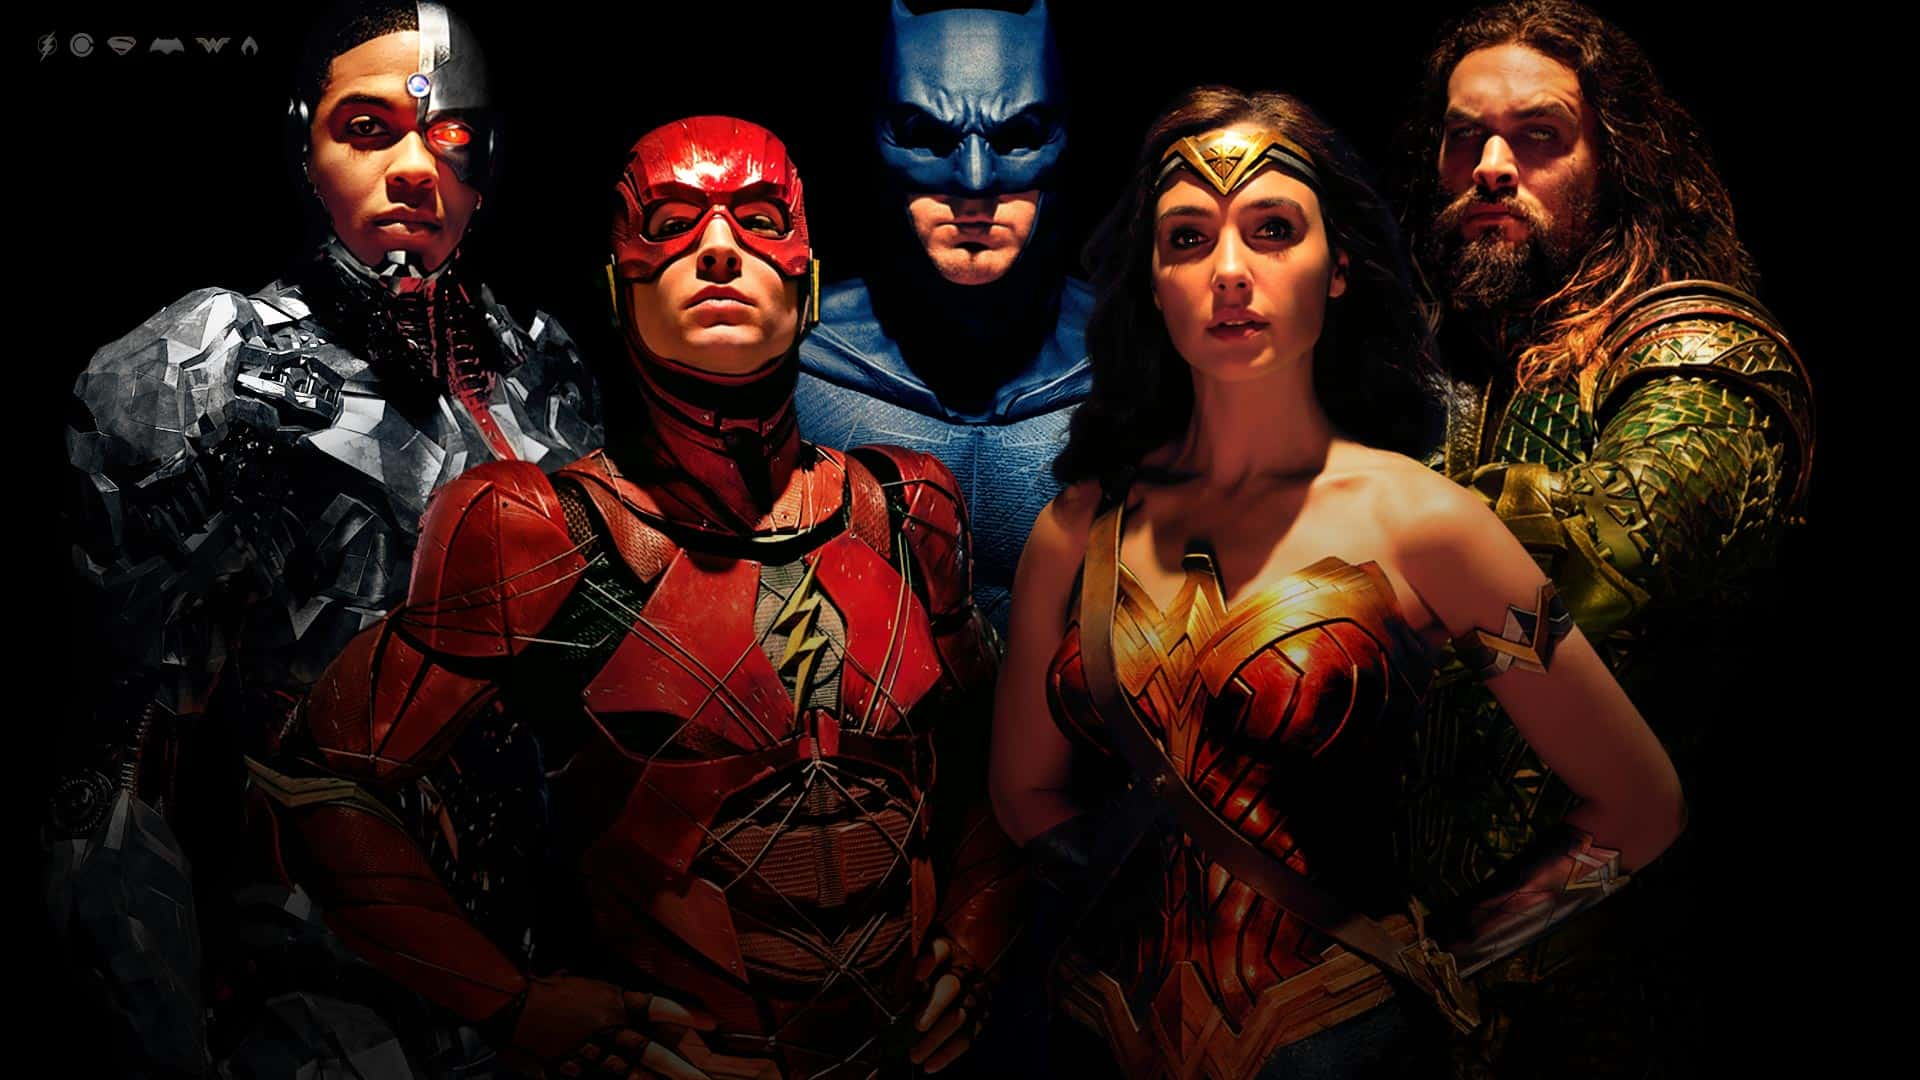 Dc 2019 Movies Poster: 'Justice League' Is The Lowest Grossing DCEU Movie